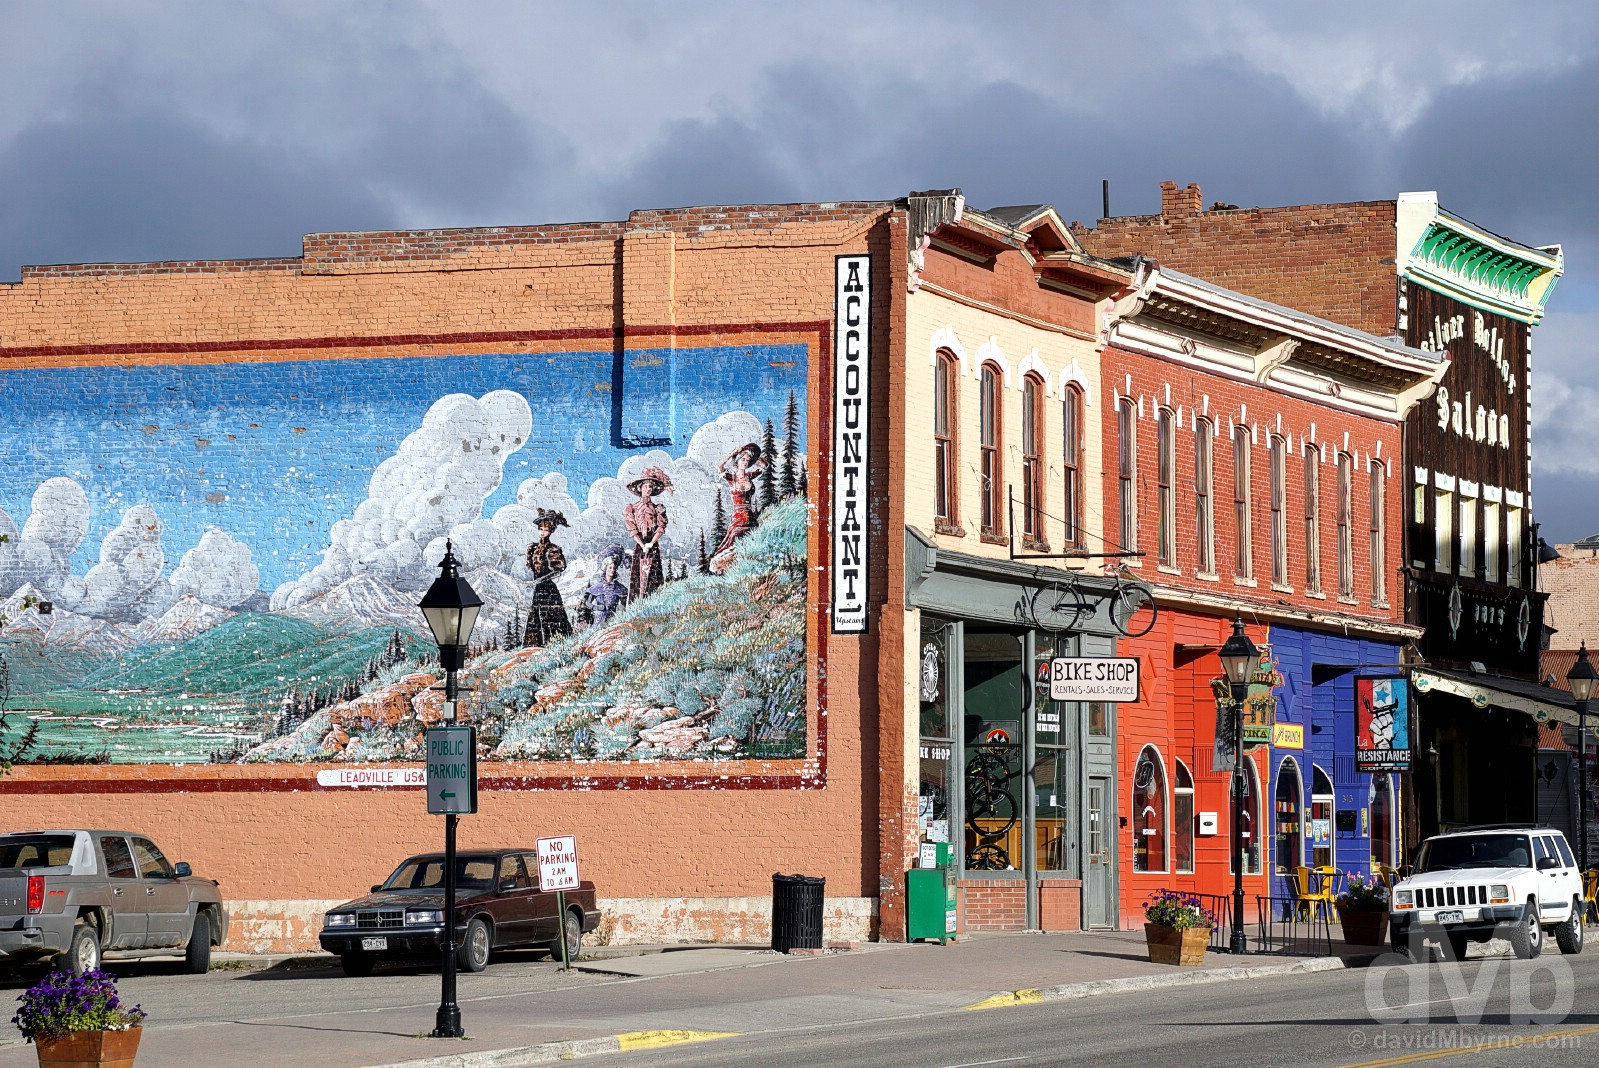 Harrison Avenue, Leadville, central Colorado, USA. September 13, 2016.